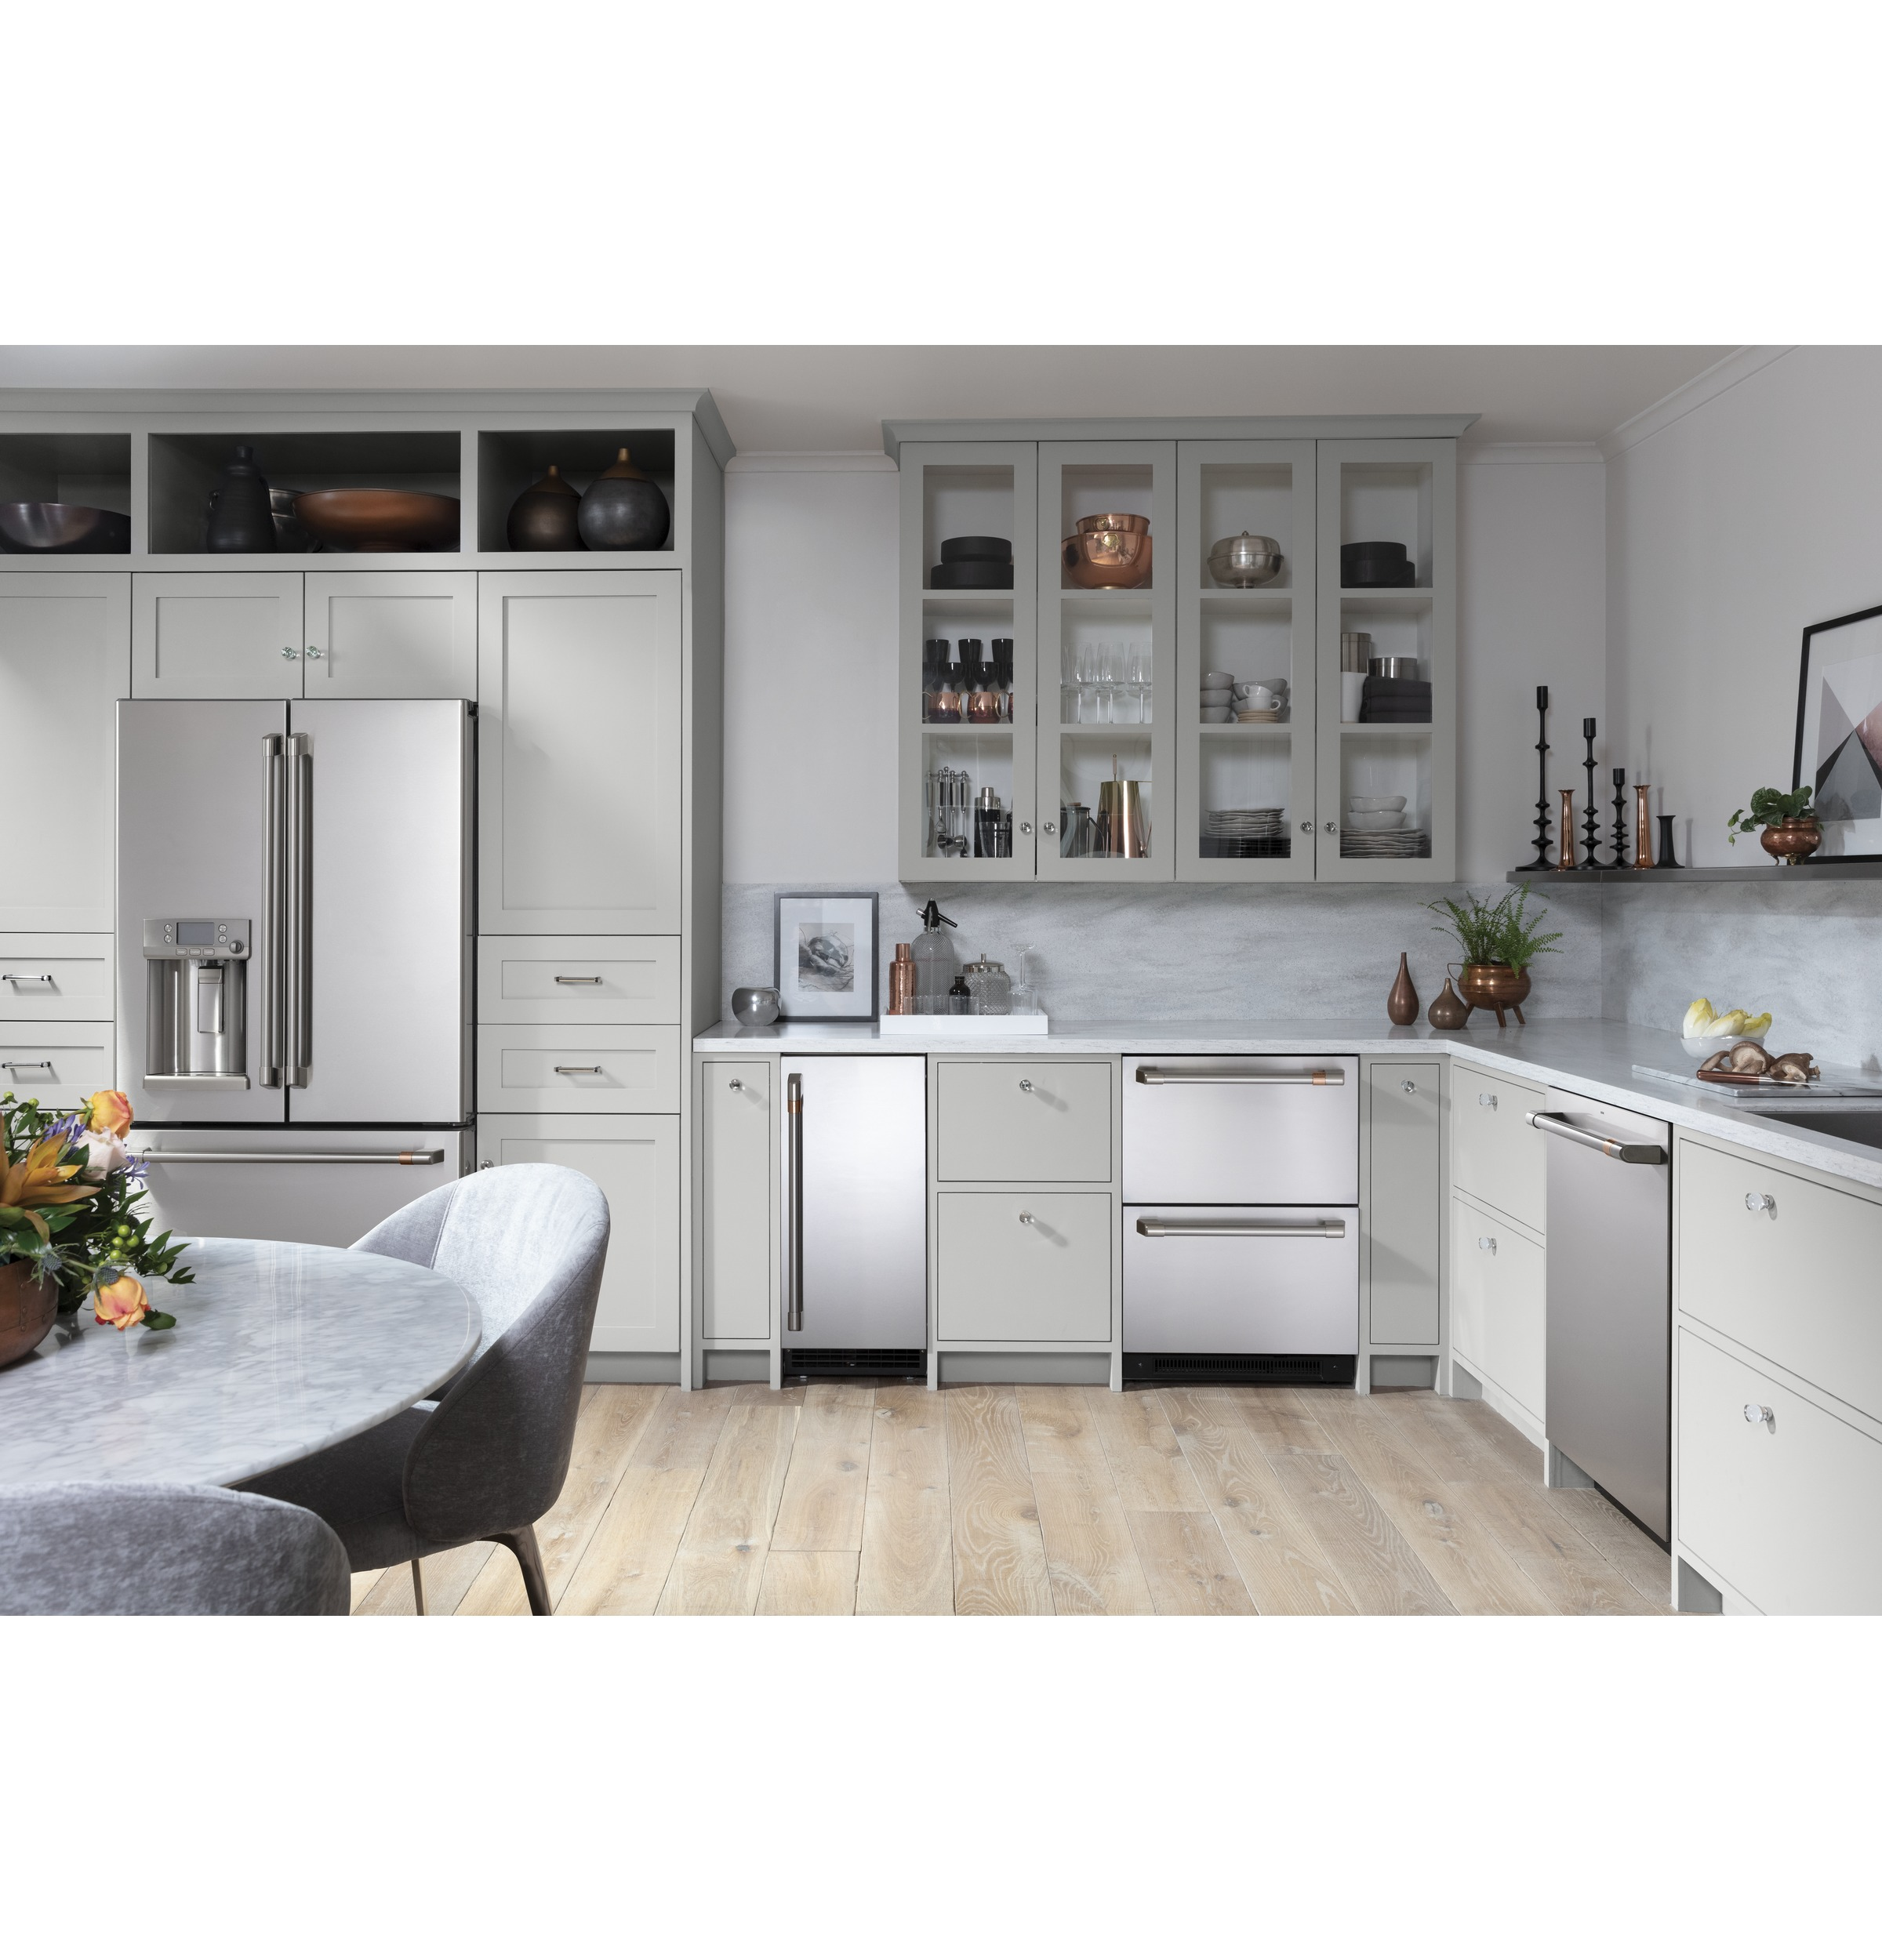 Model: CDT805P2NS1 | Cafe Café™ Stainless Interior Built-In Dishwasher with Hidden Controls